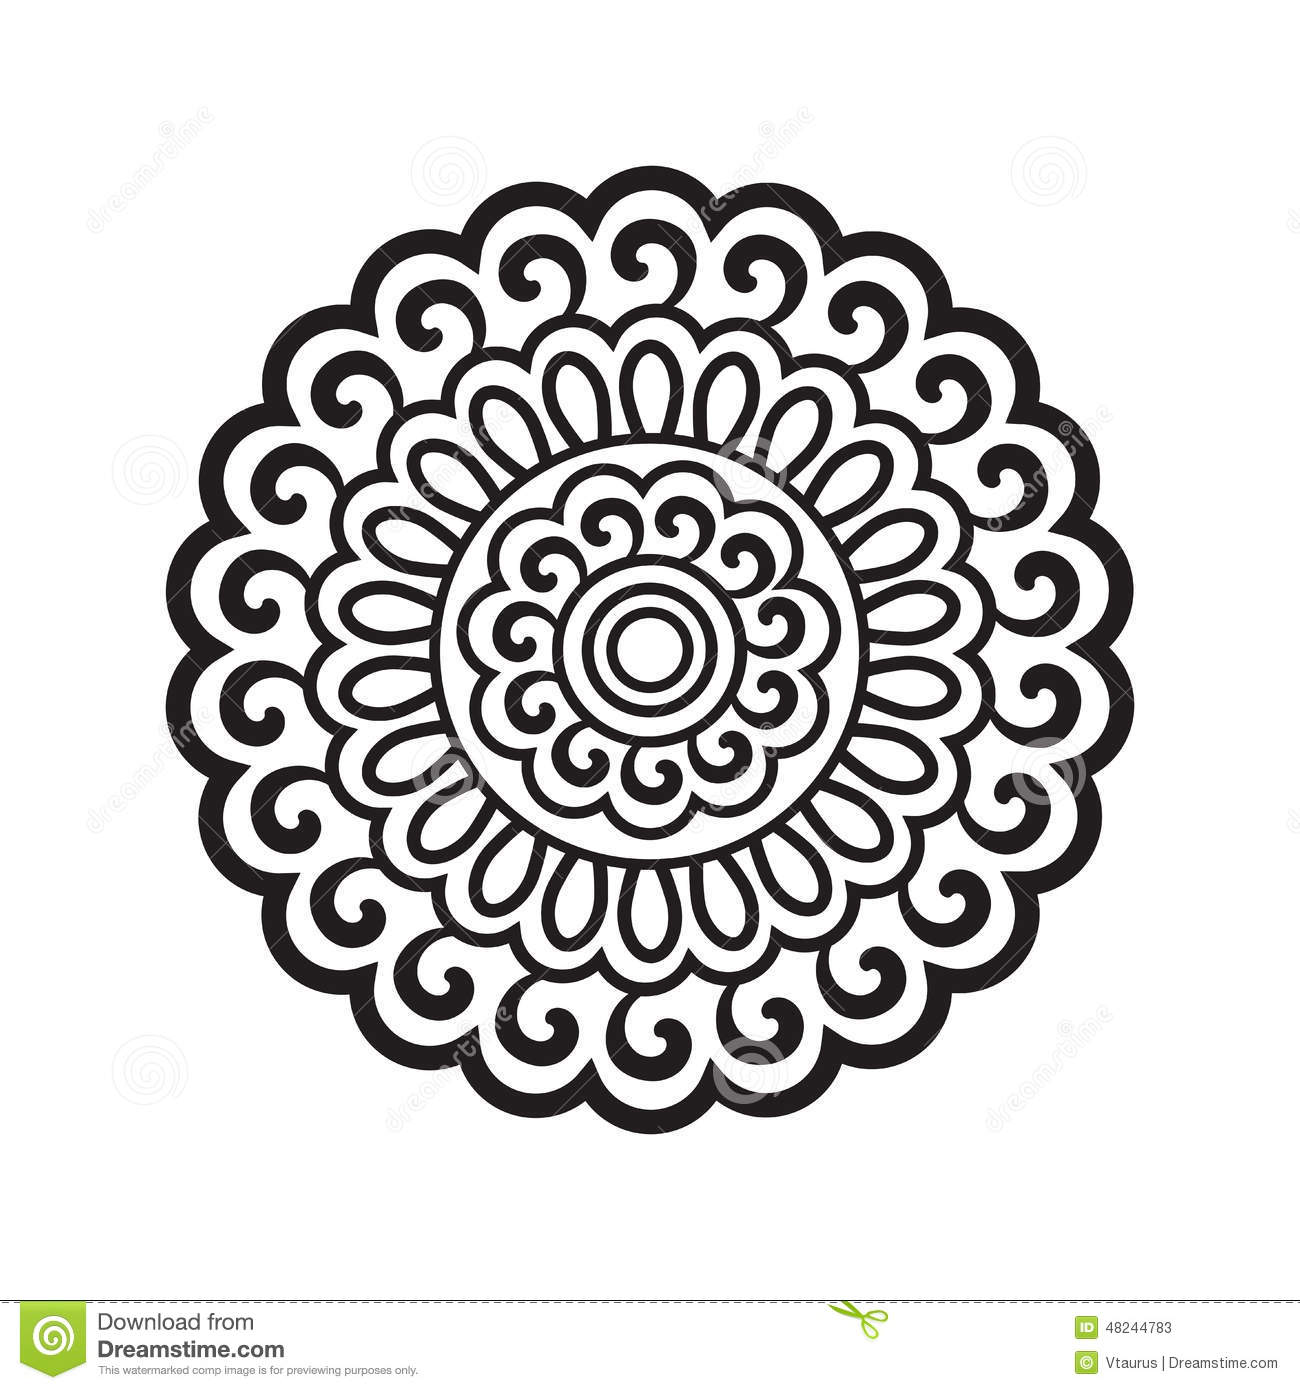 Abstract floral motif black and white graphics